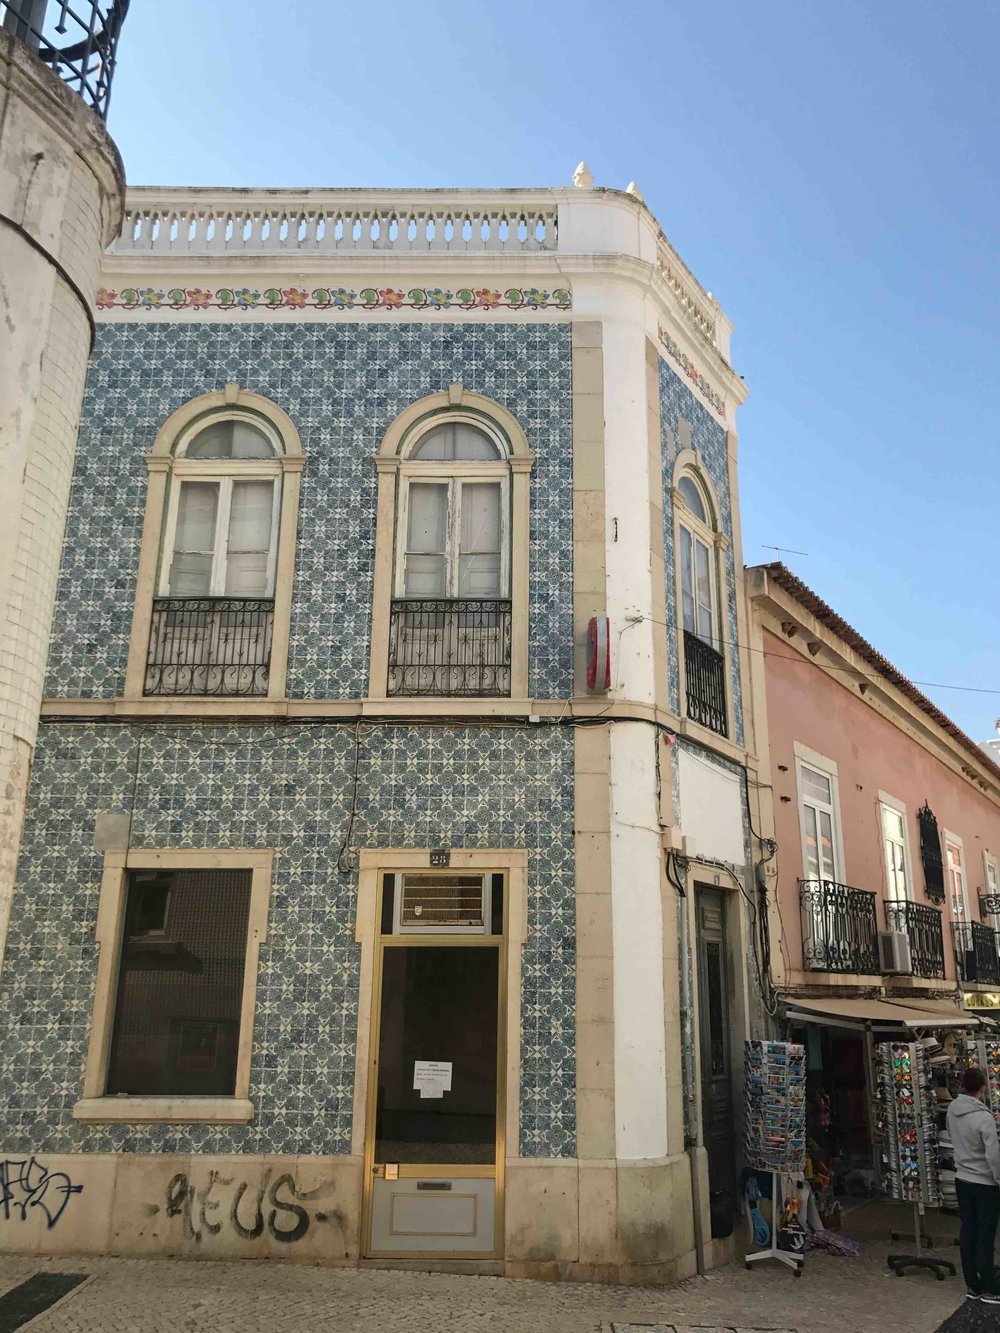 #disawistories #reiseblog #portugal #algarve #lagos #oldtown #surfen.jpg